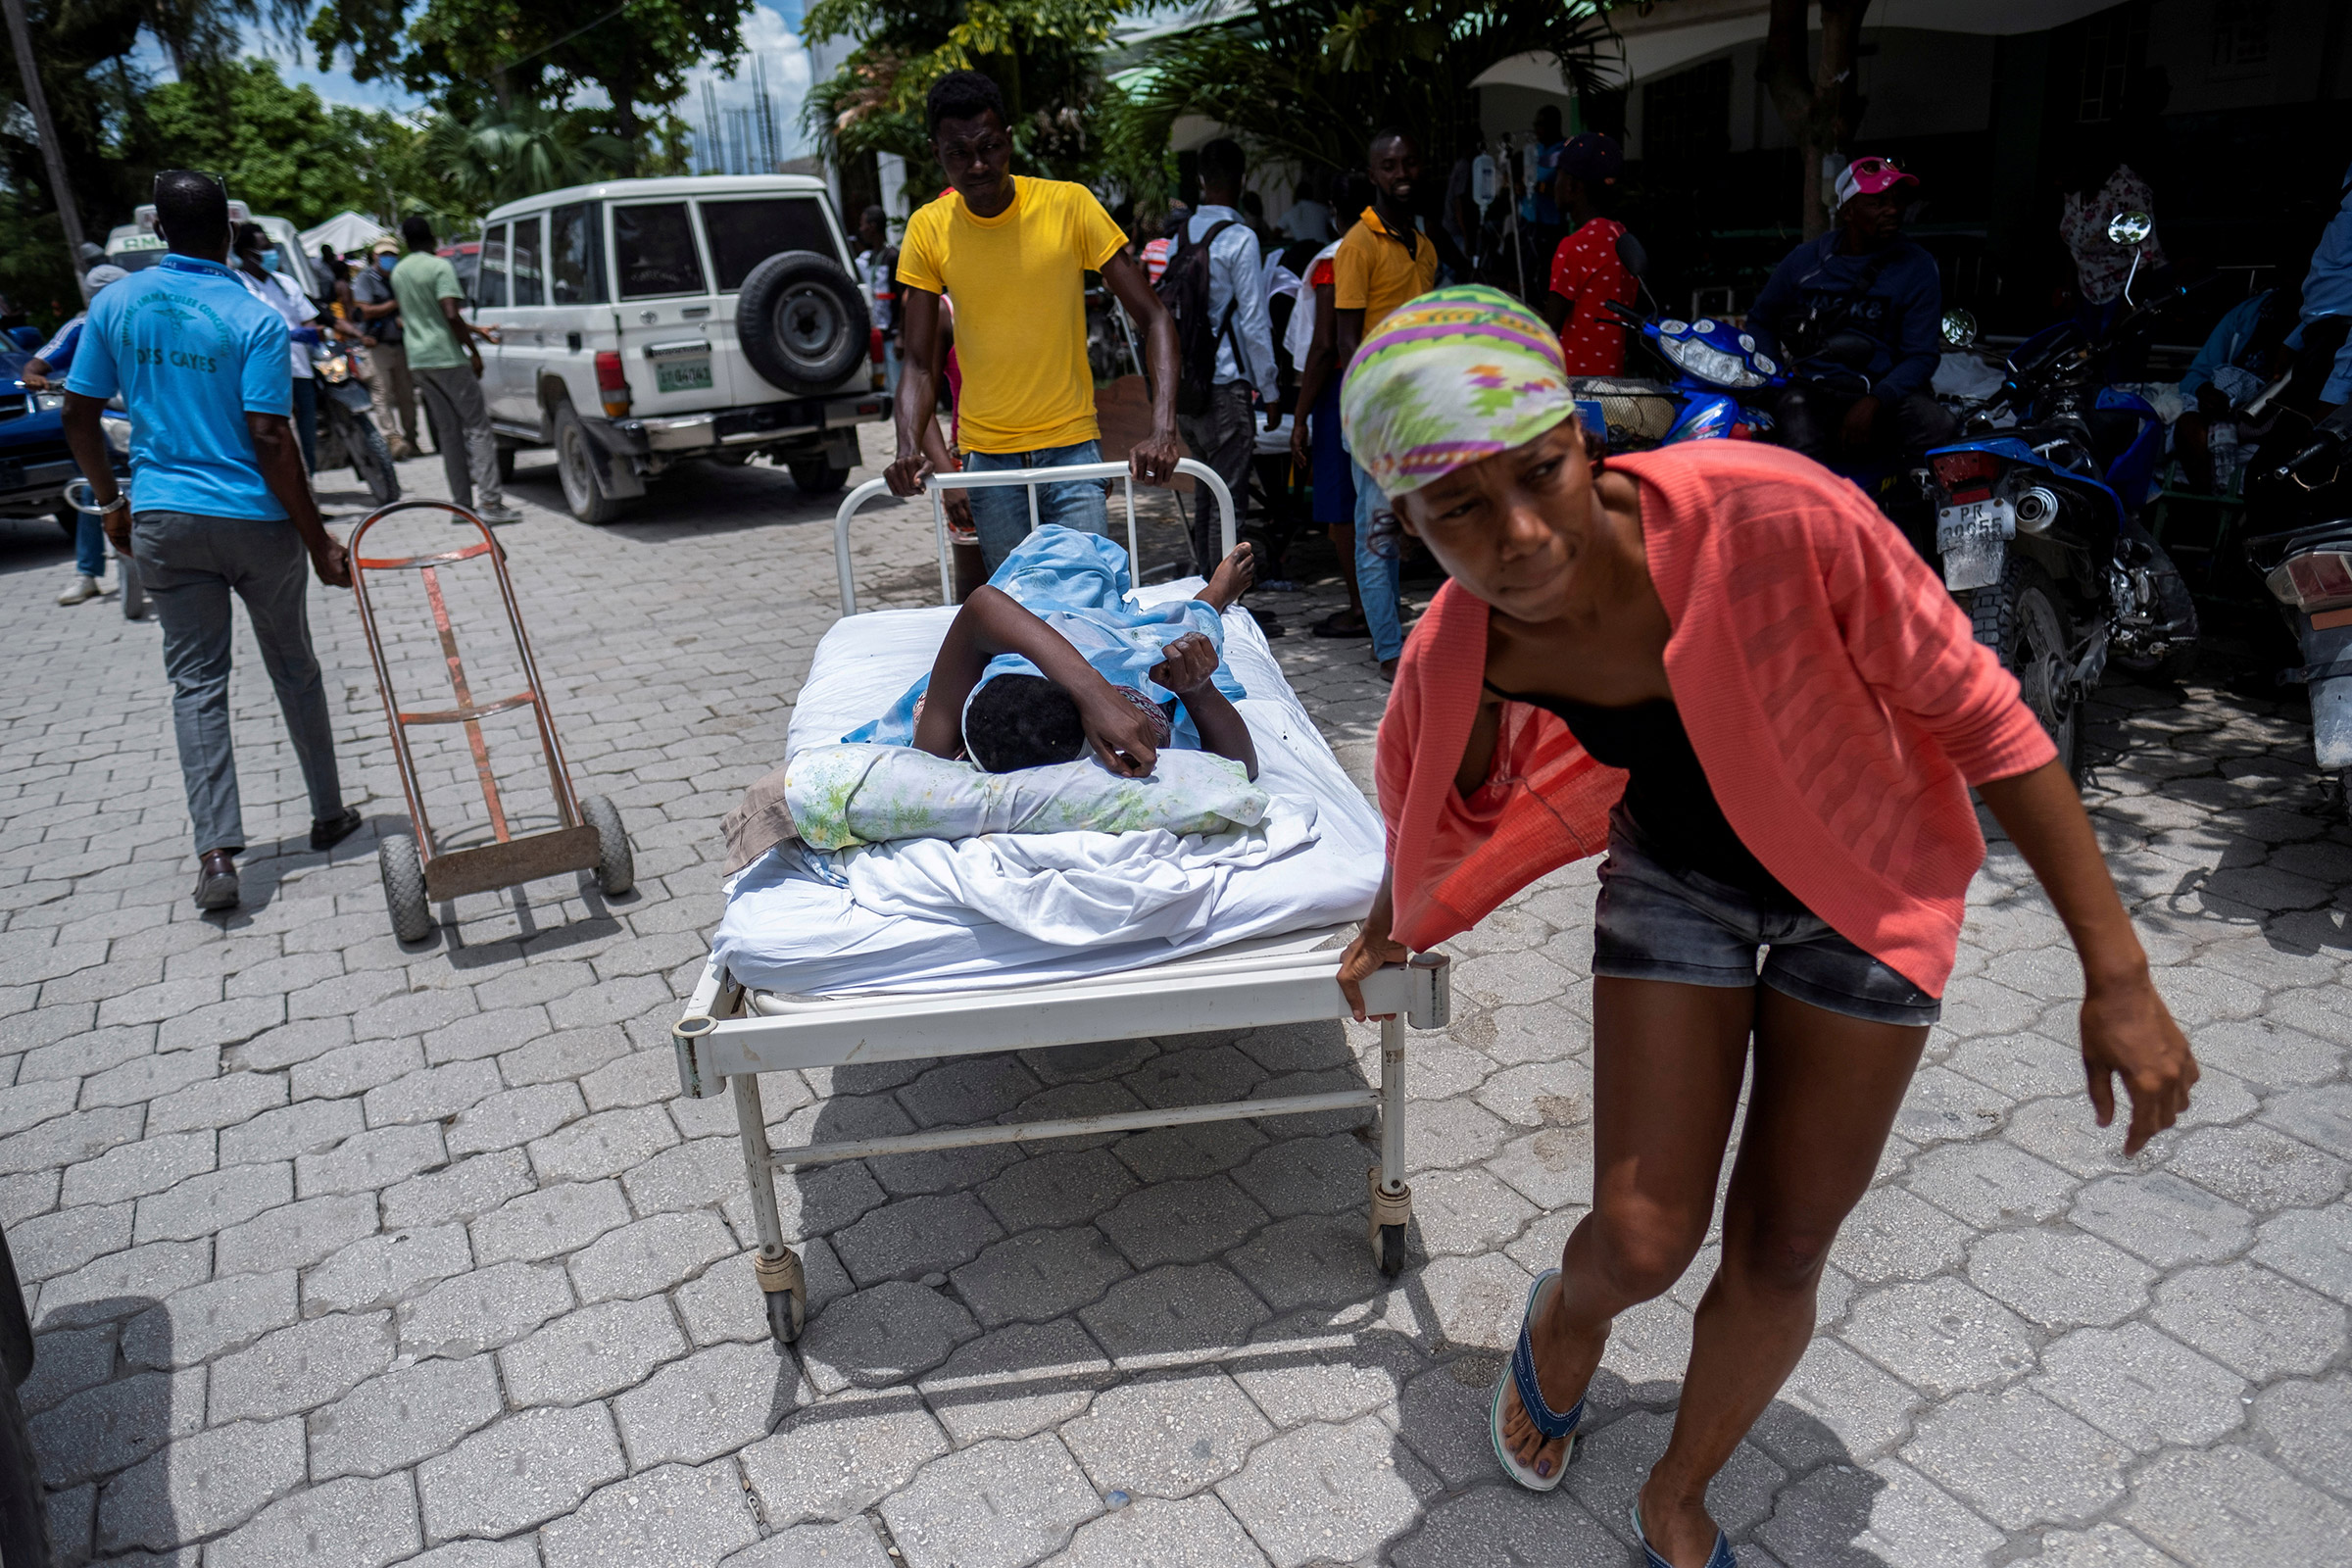 A woman injured in the earthquake is transported to a hospital in Les Cayes on Aug. 16.